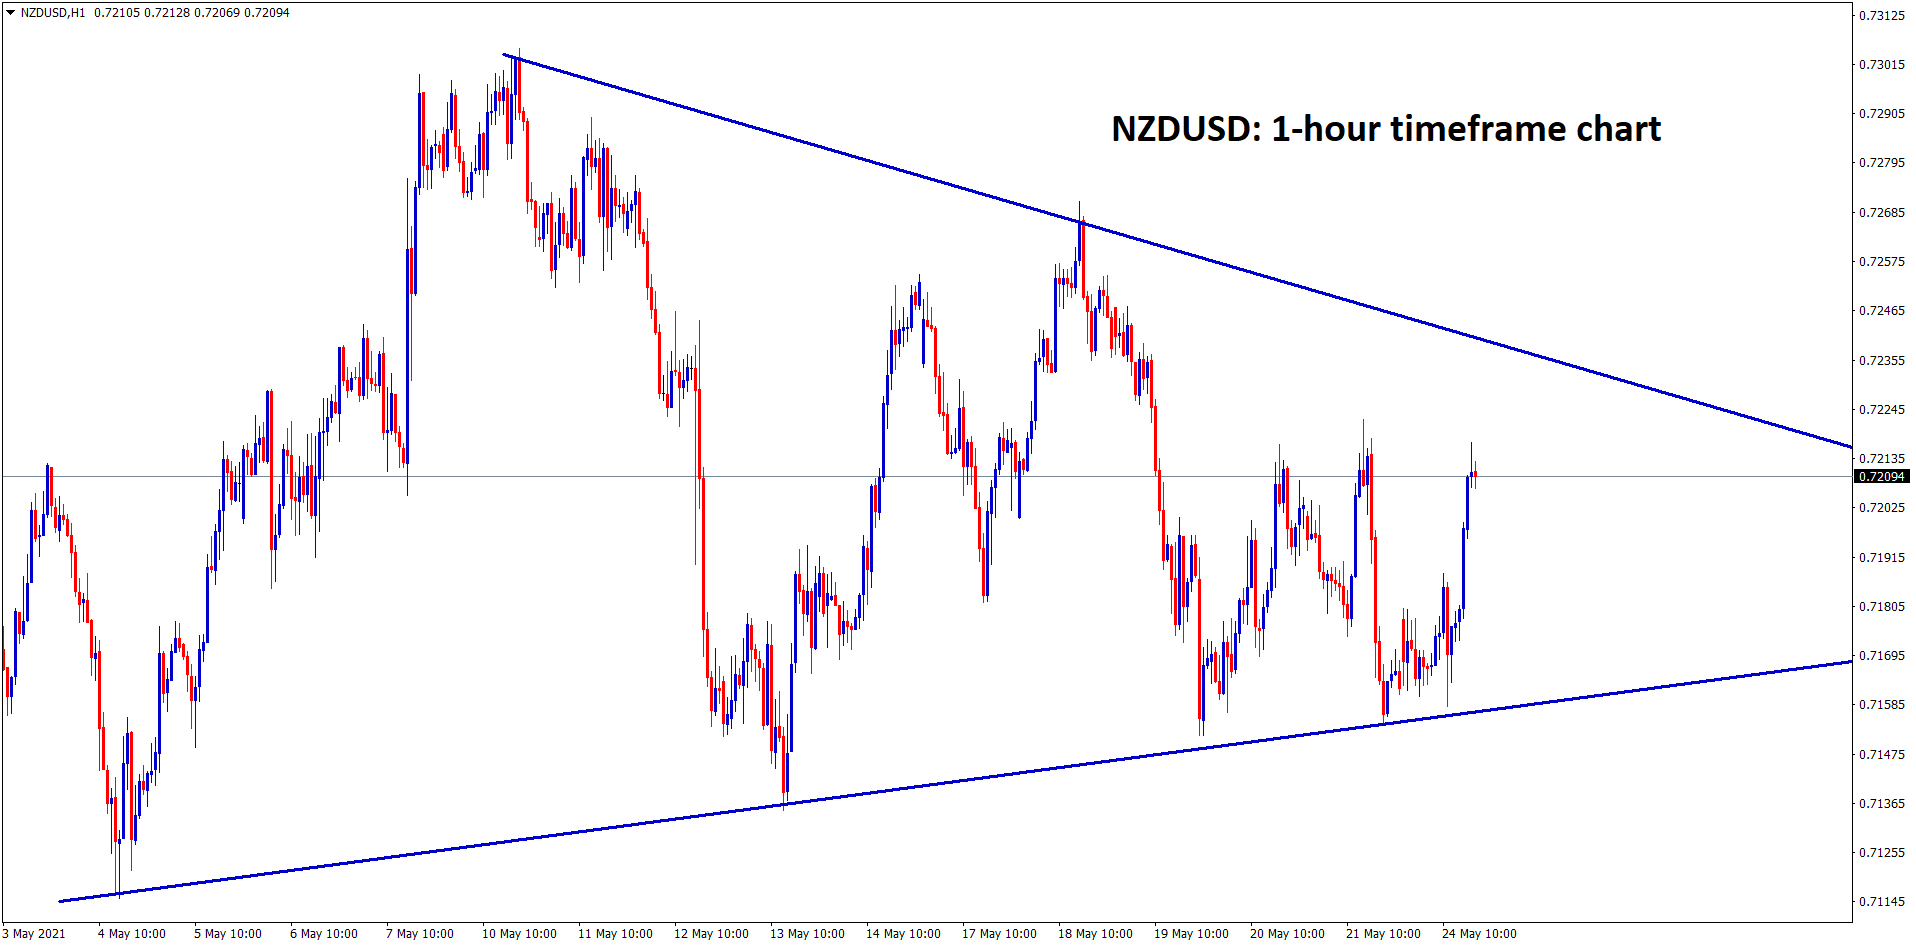 NZDUSD is moving in a symmetrical Triangle pattern